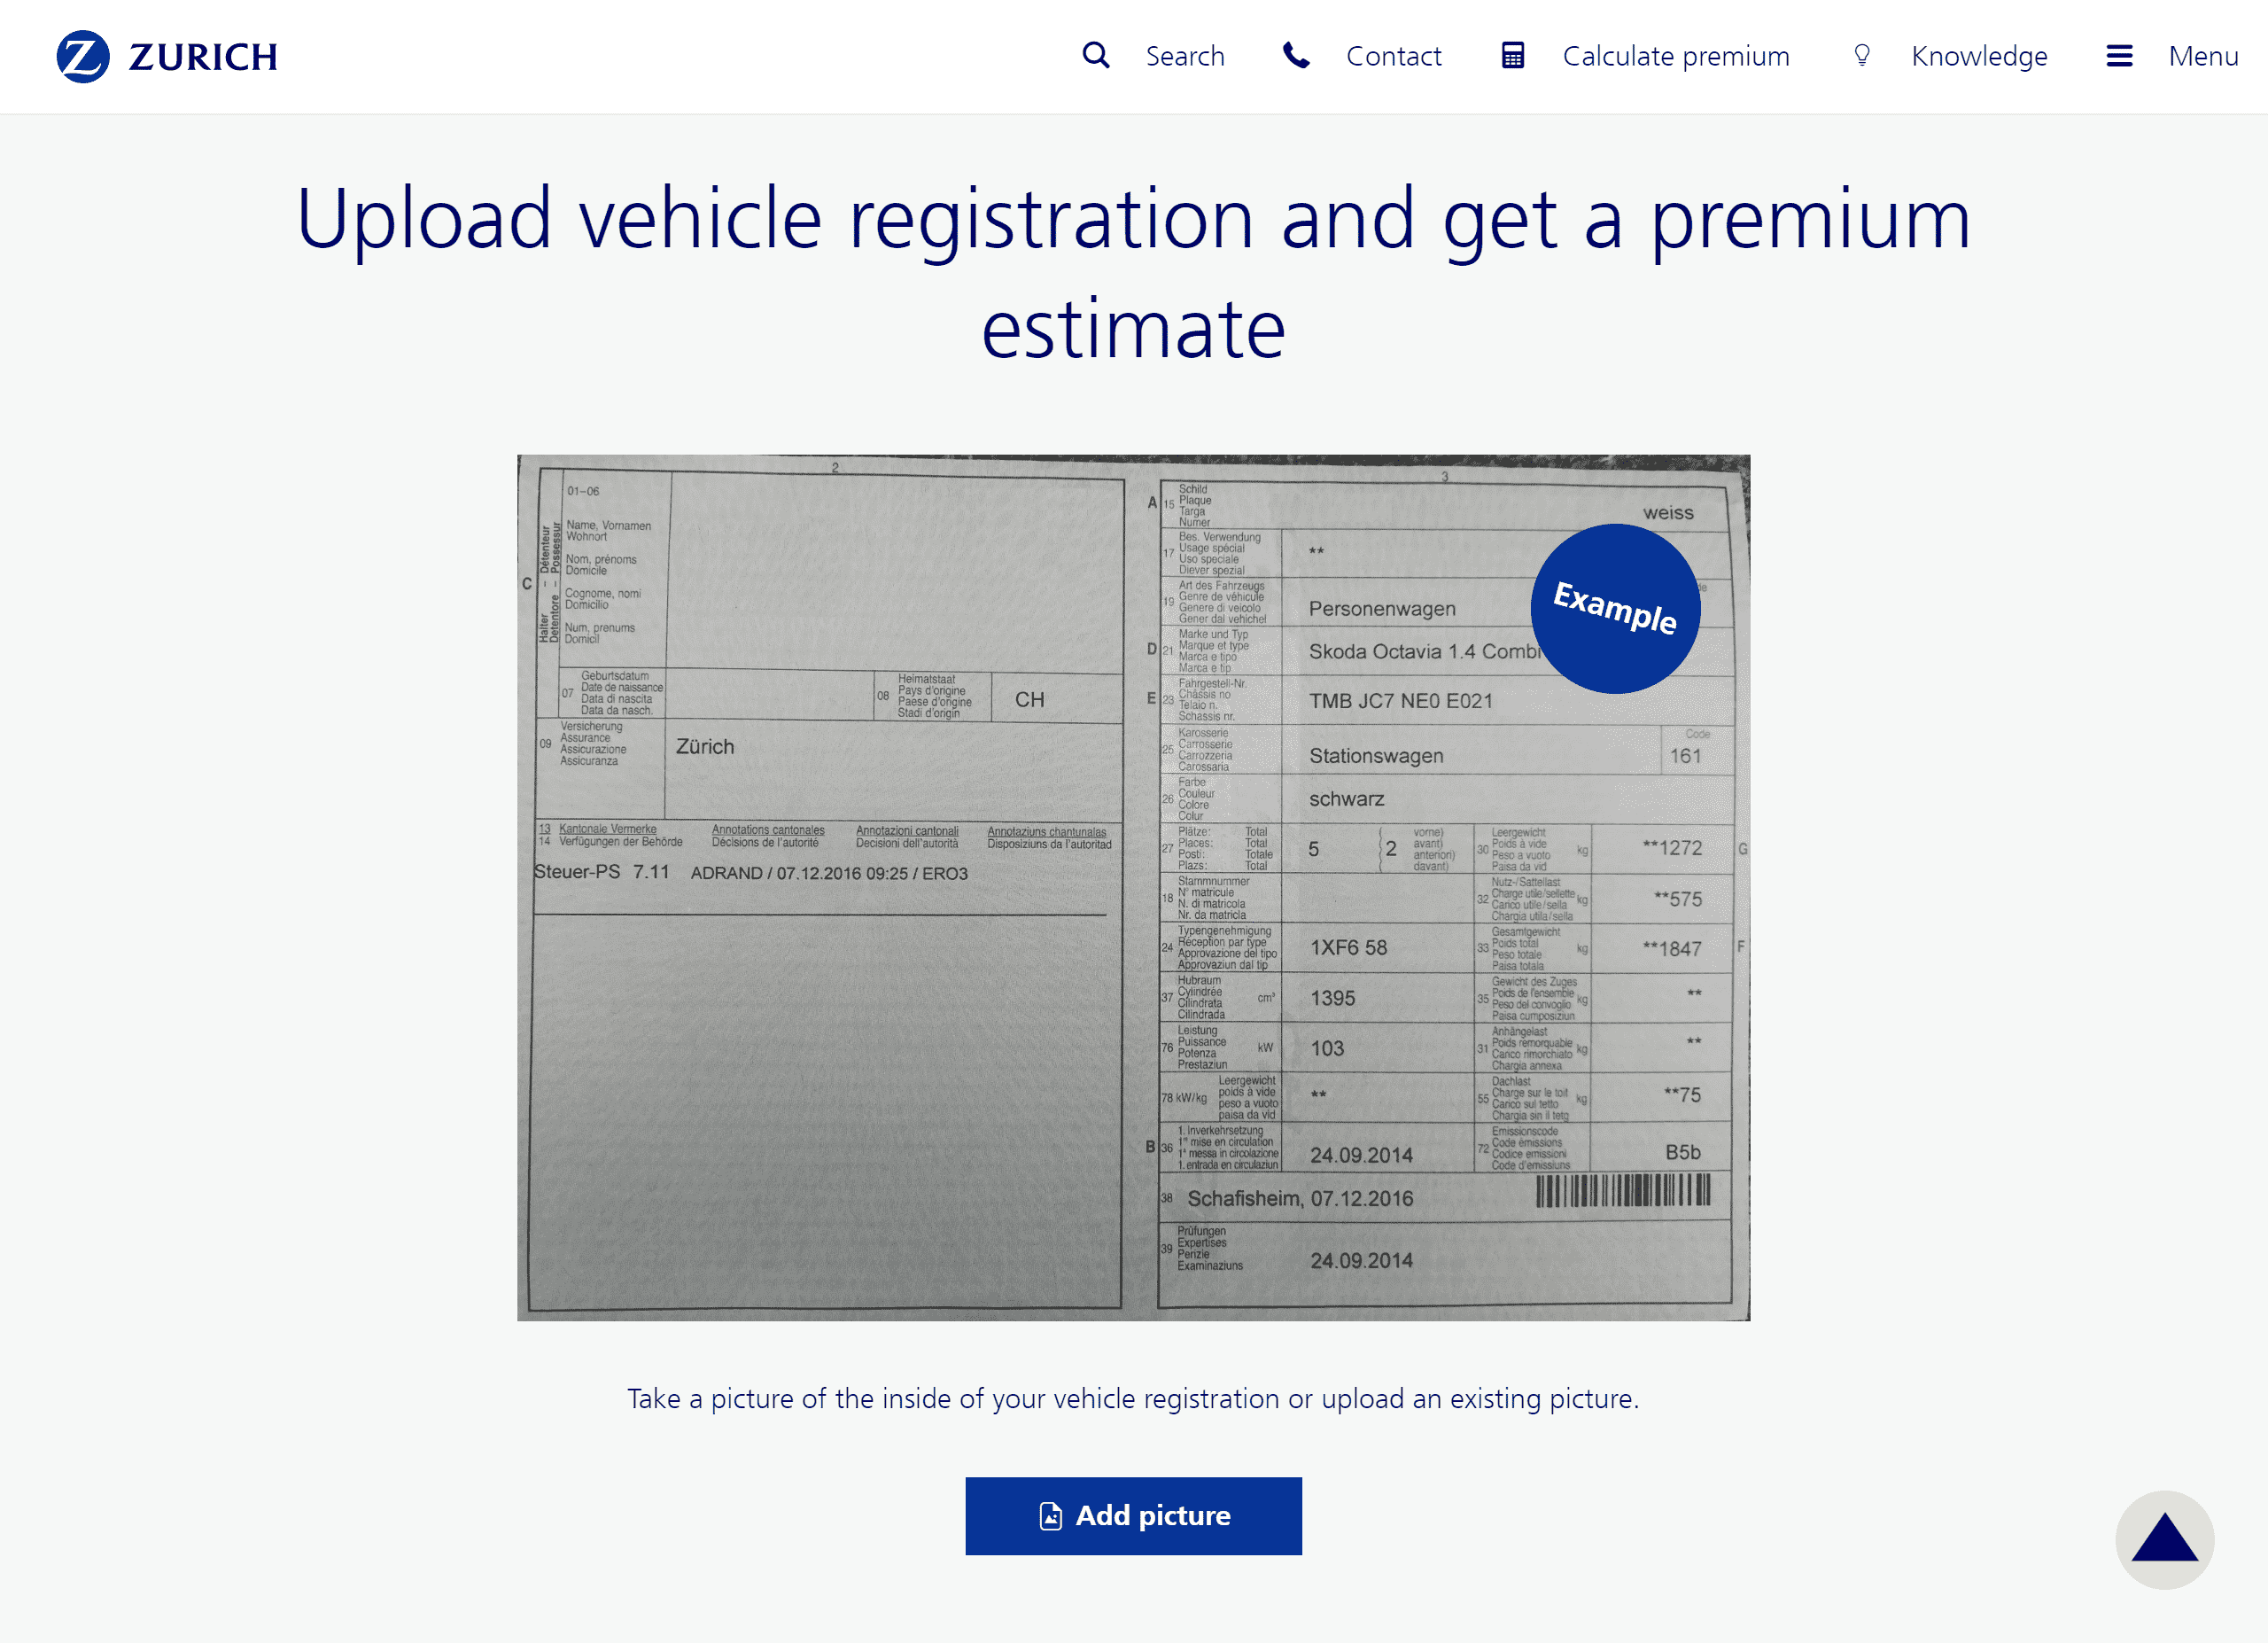 Screenshot that shows the quote component on the zurich.ch website